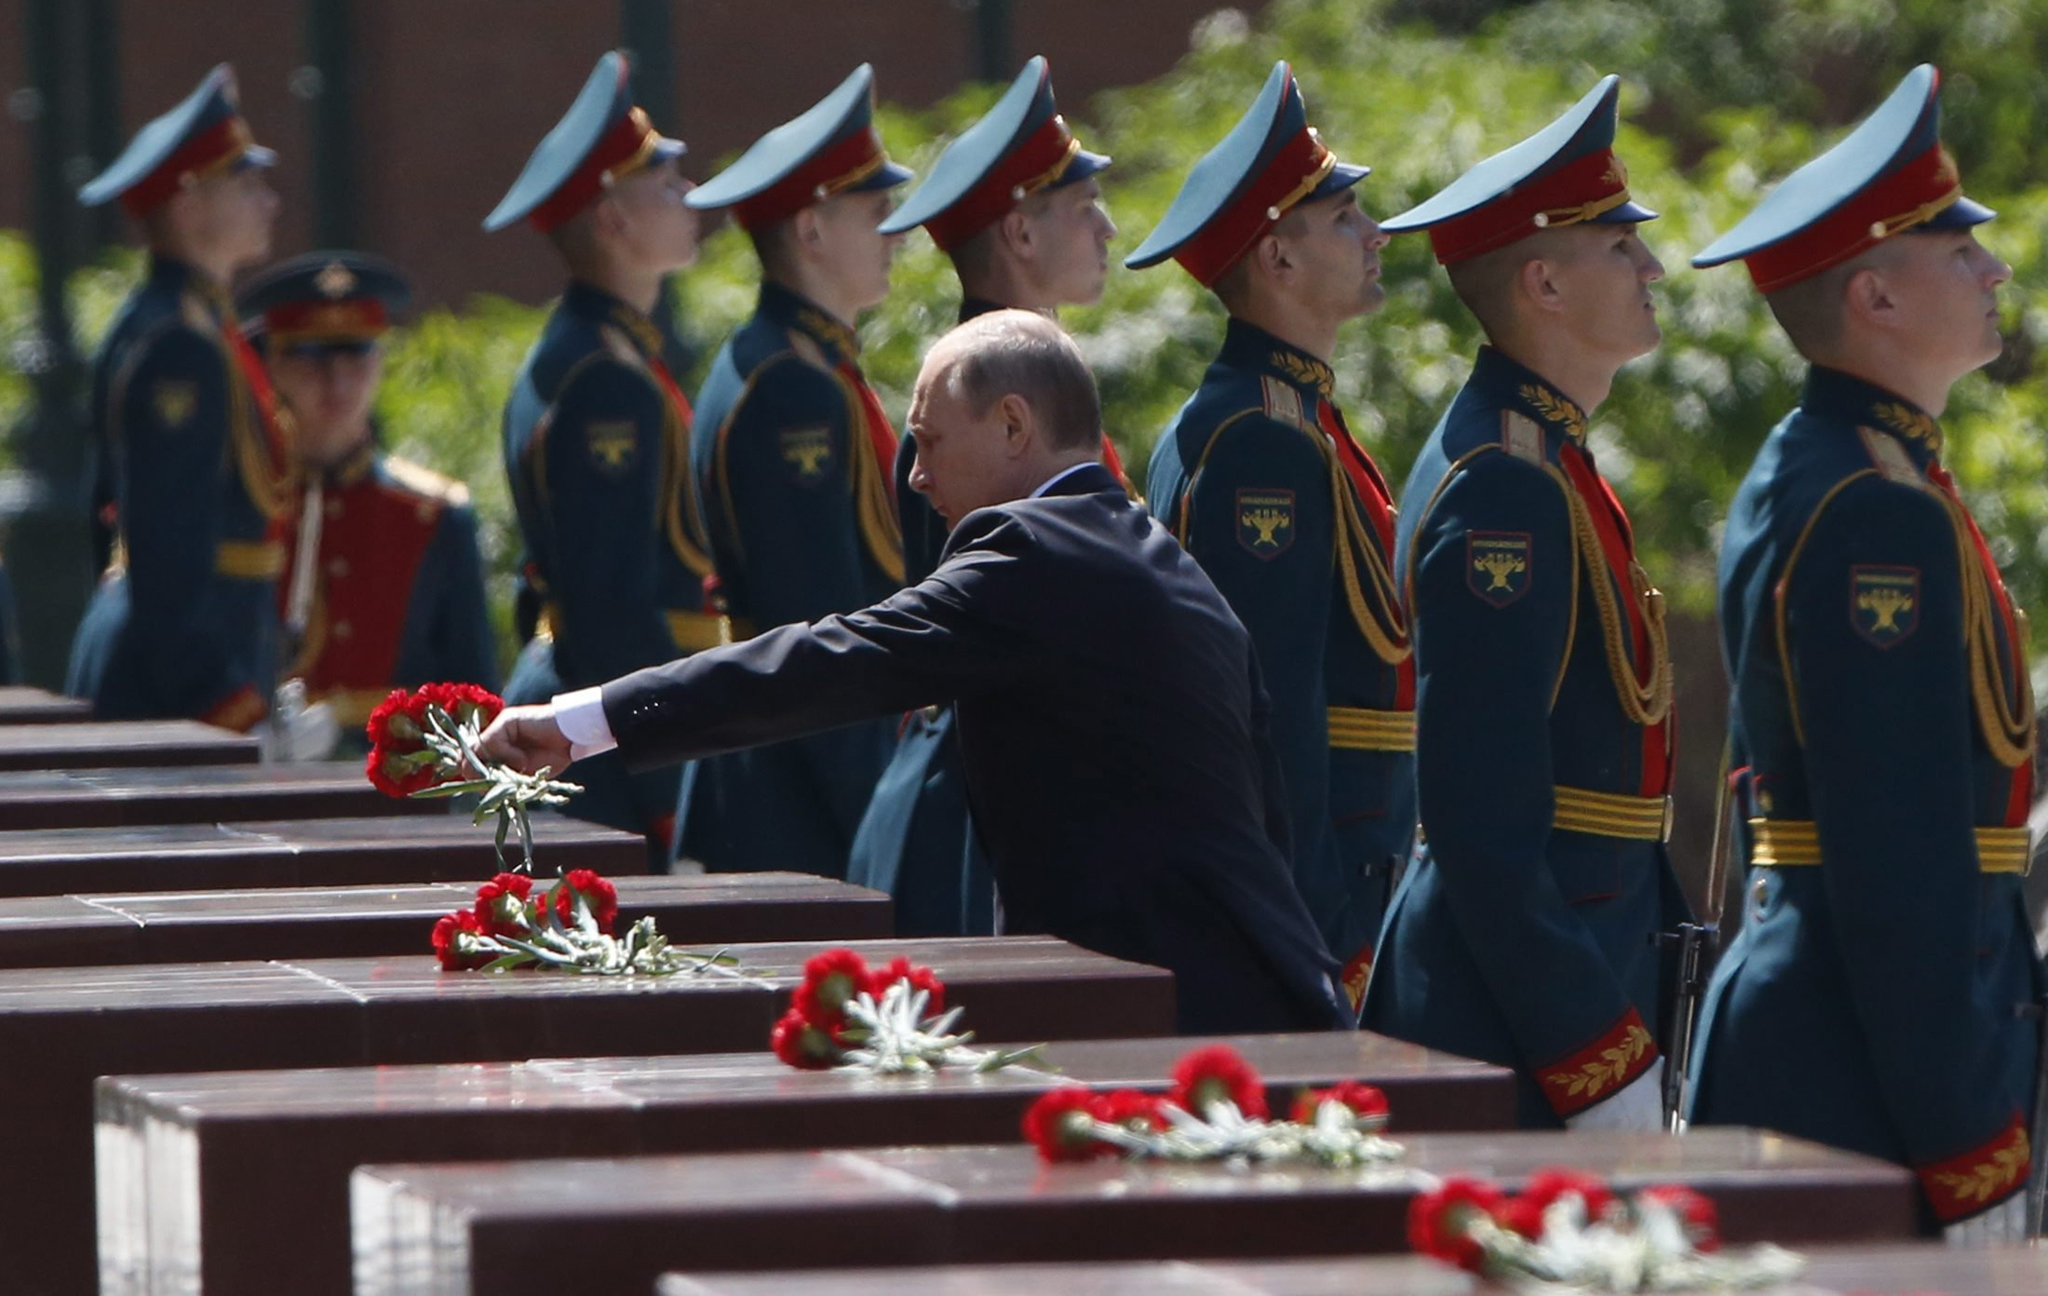 epa05383038 Russian President Vladimir Putin (C) lays flowers during a wreath-laying ceremony in the Alexander Garden near the Kremlin wall in Moscow, Russia, 22 June 2016, to mark the 75th anniversary of the Nazi German invasion into the then Soviet Union territory on 22 June 1941.  EPA/GRIGORY DUKOR / POOL